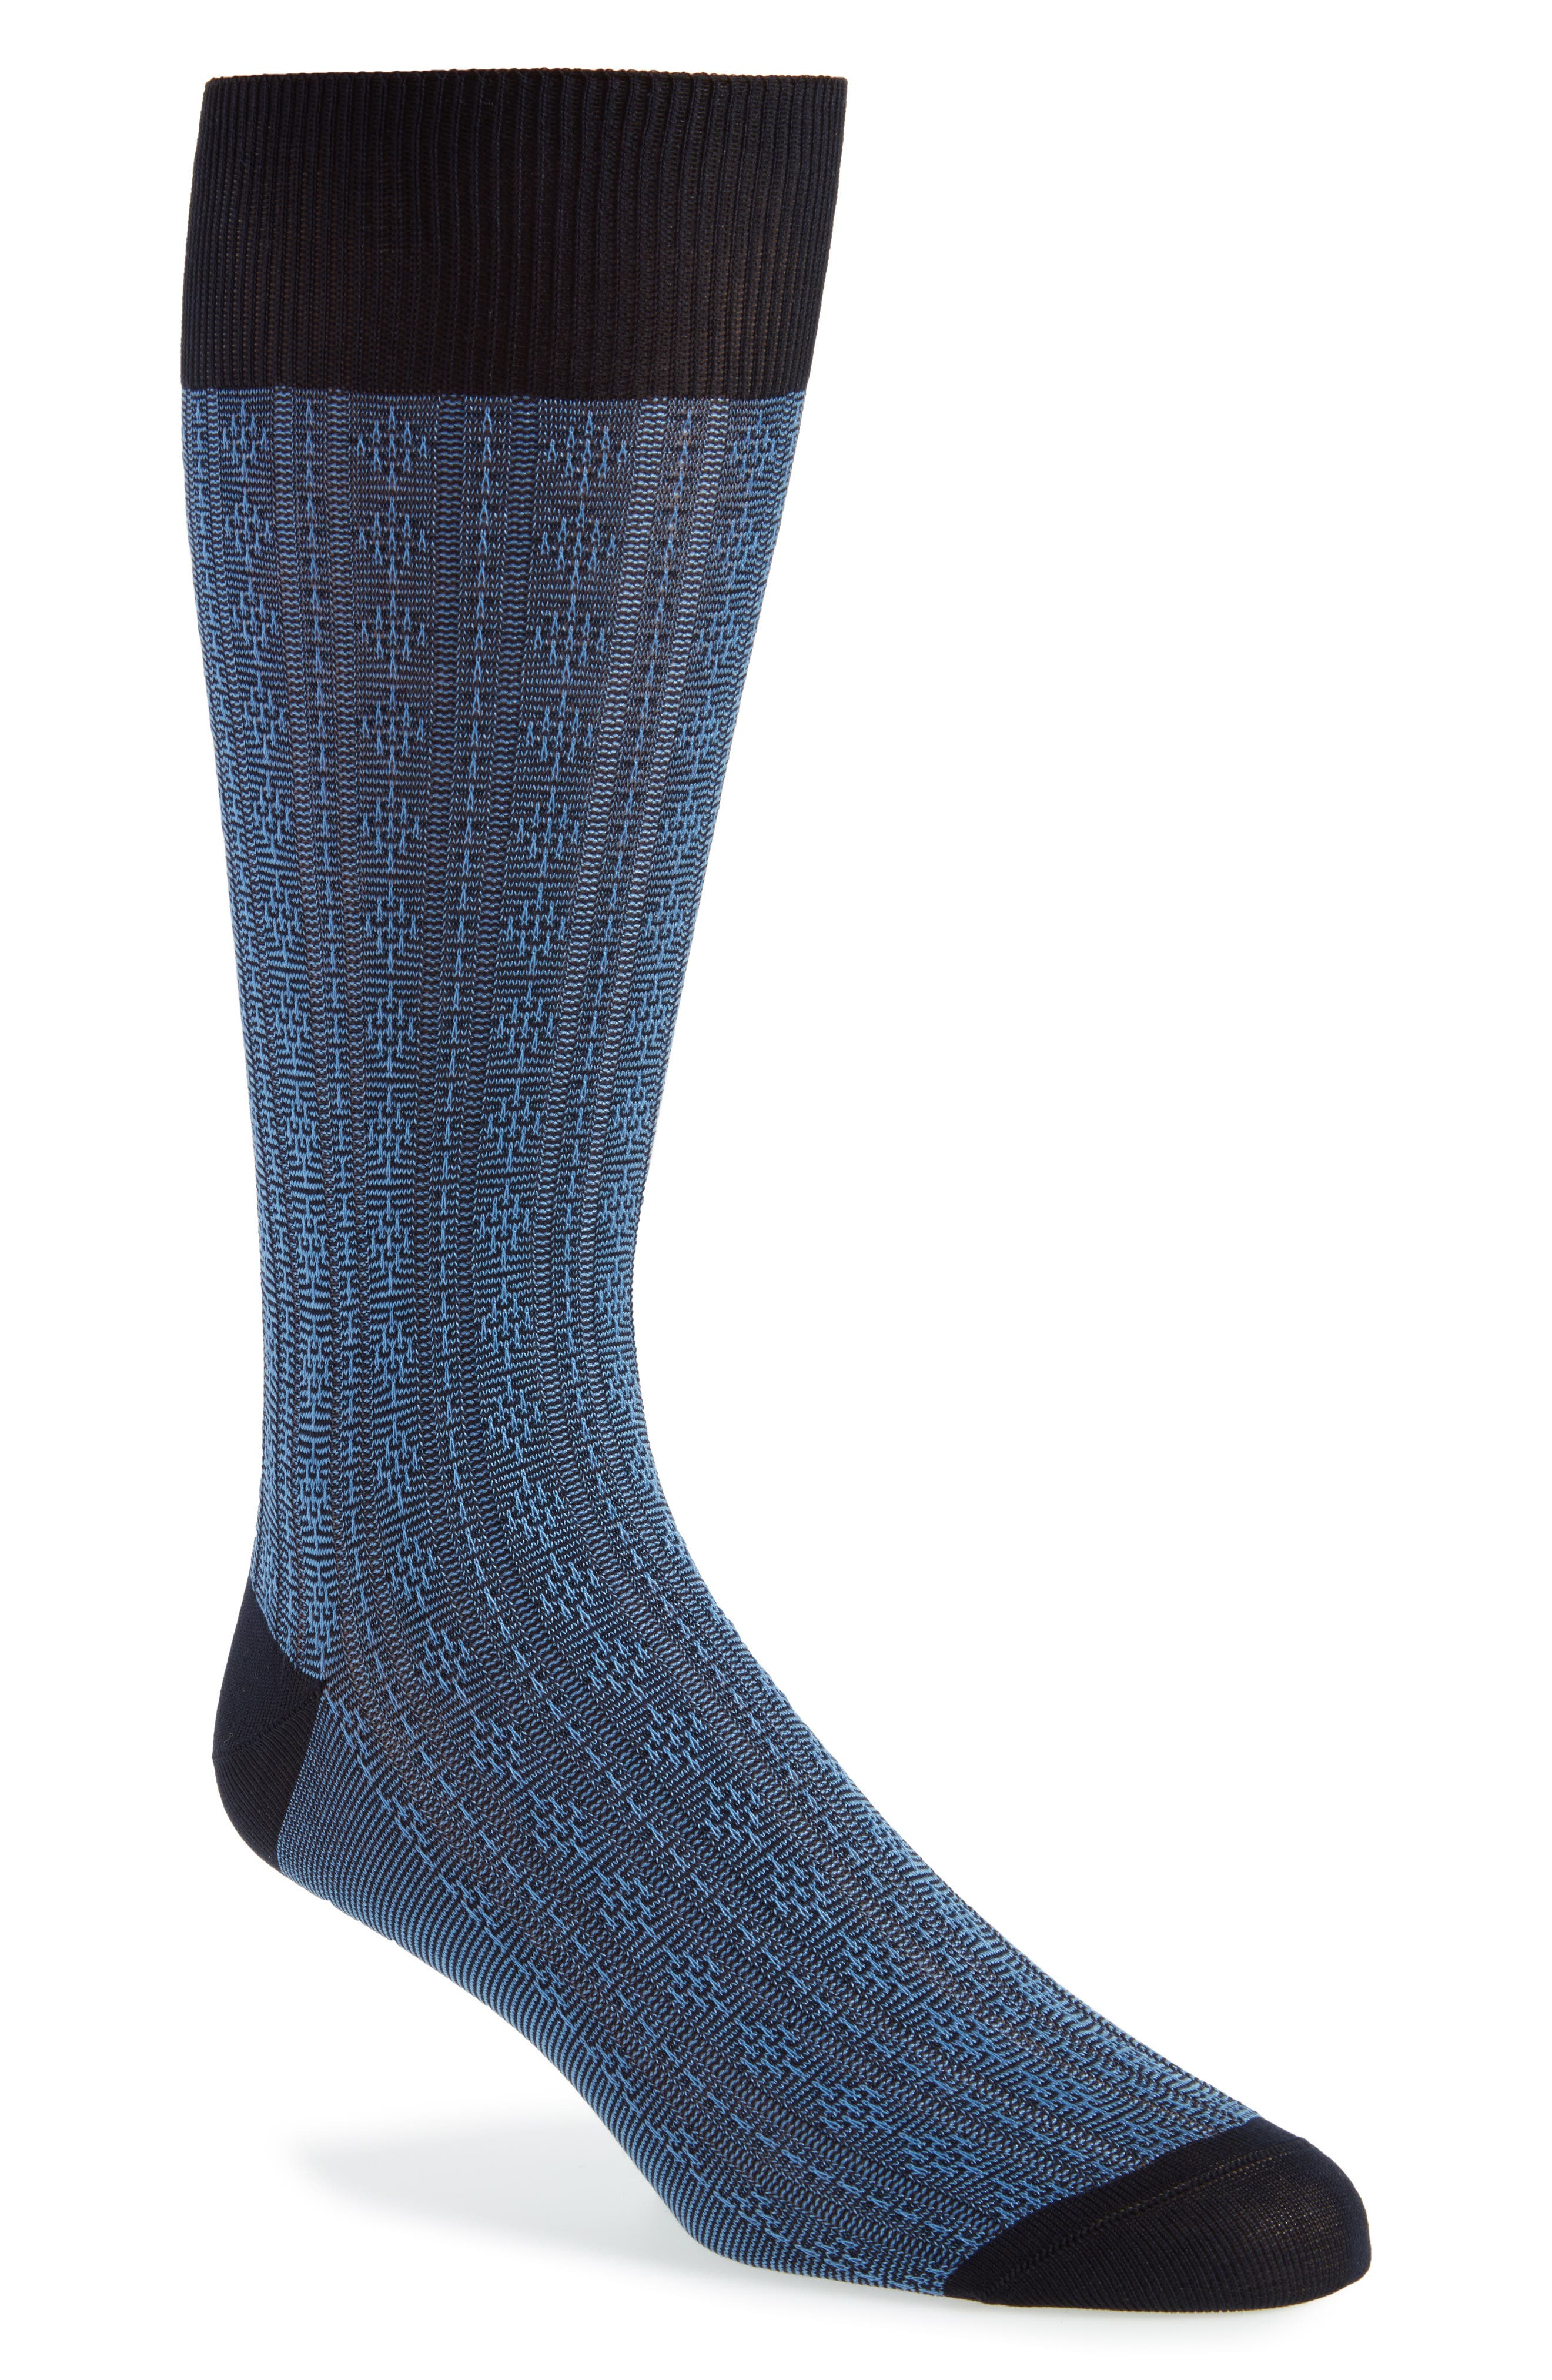 Atom Stitch Socks,                             Main thumbnail 1, color,                             Navy